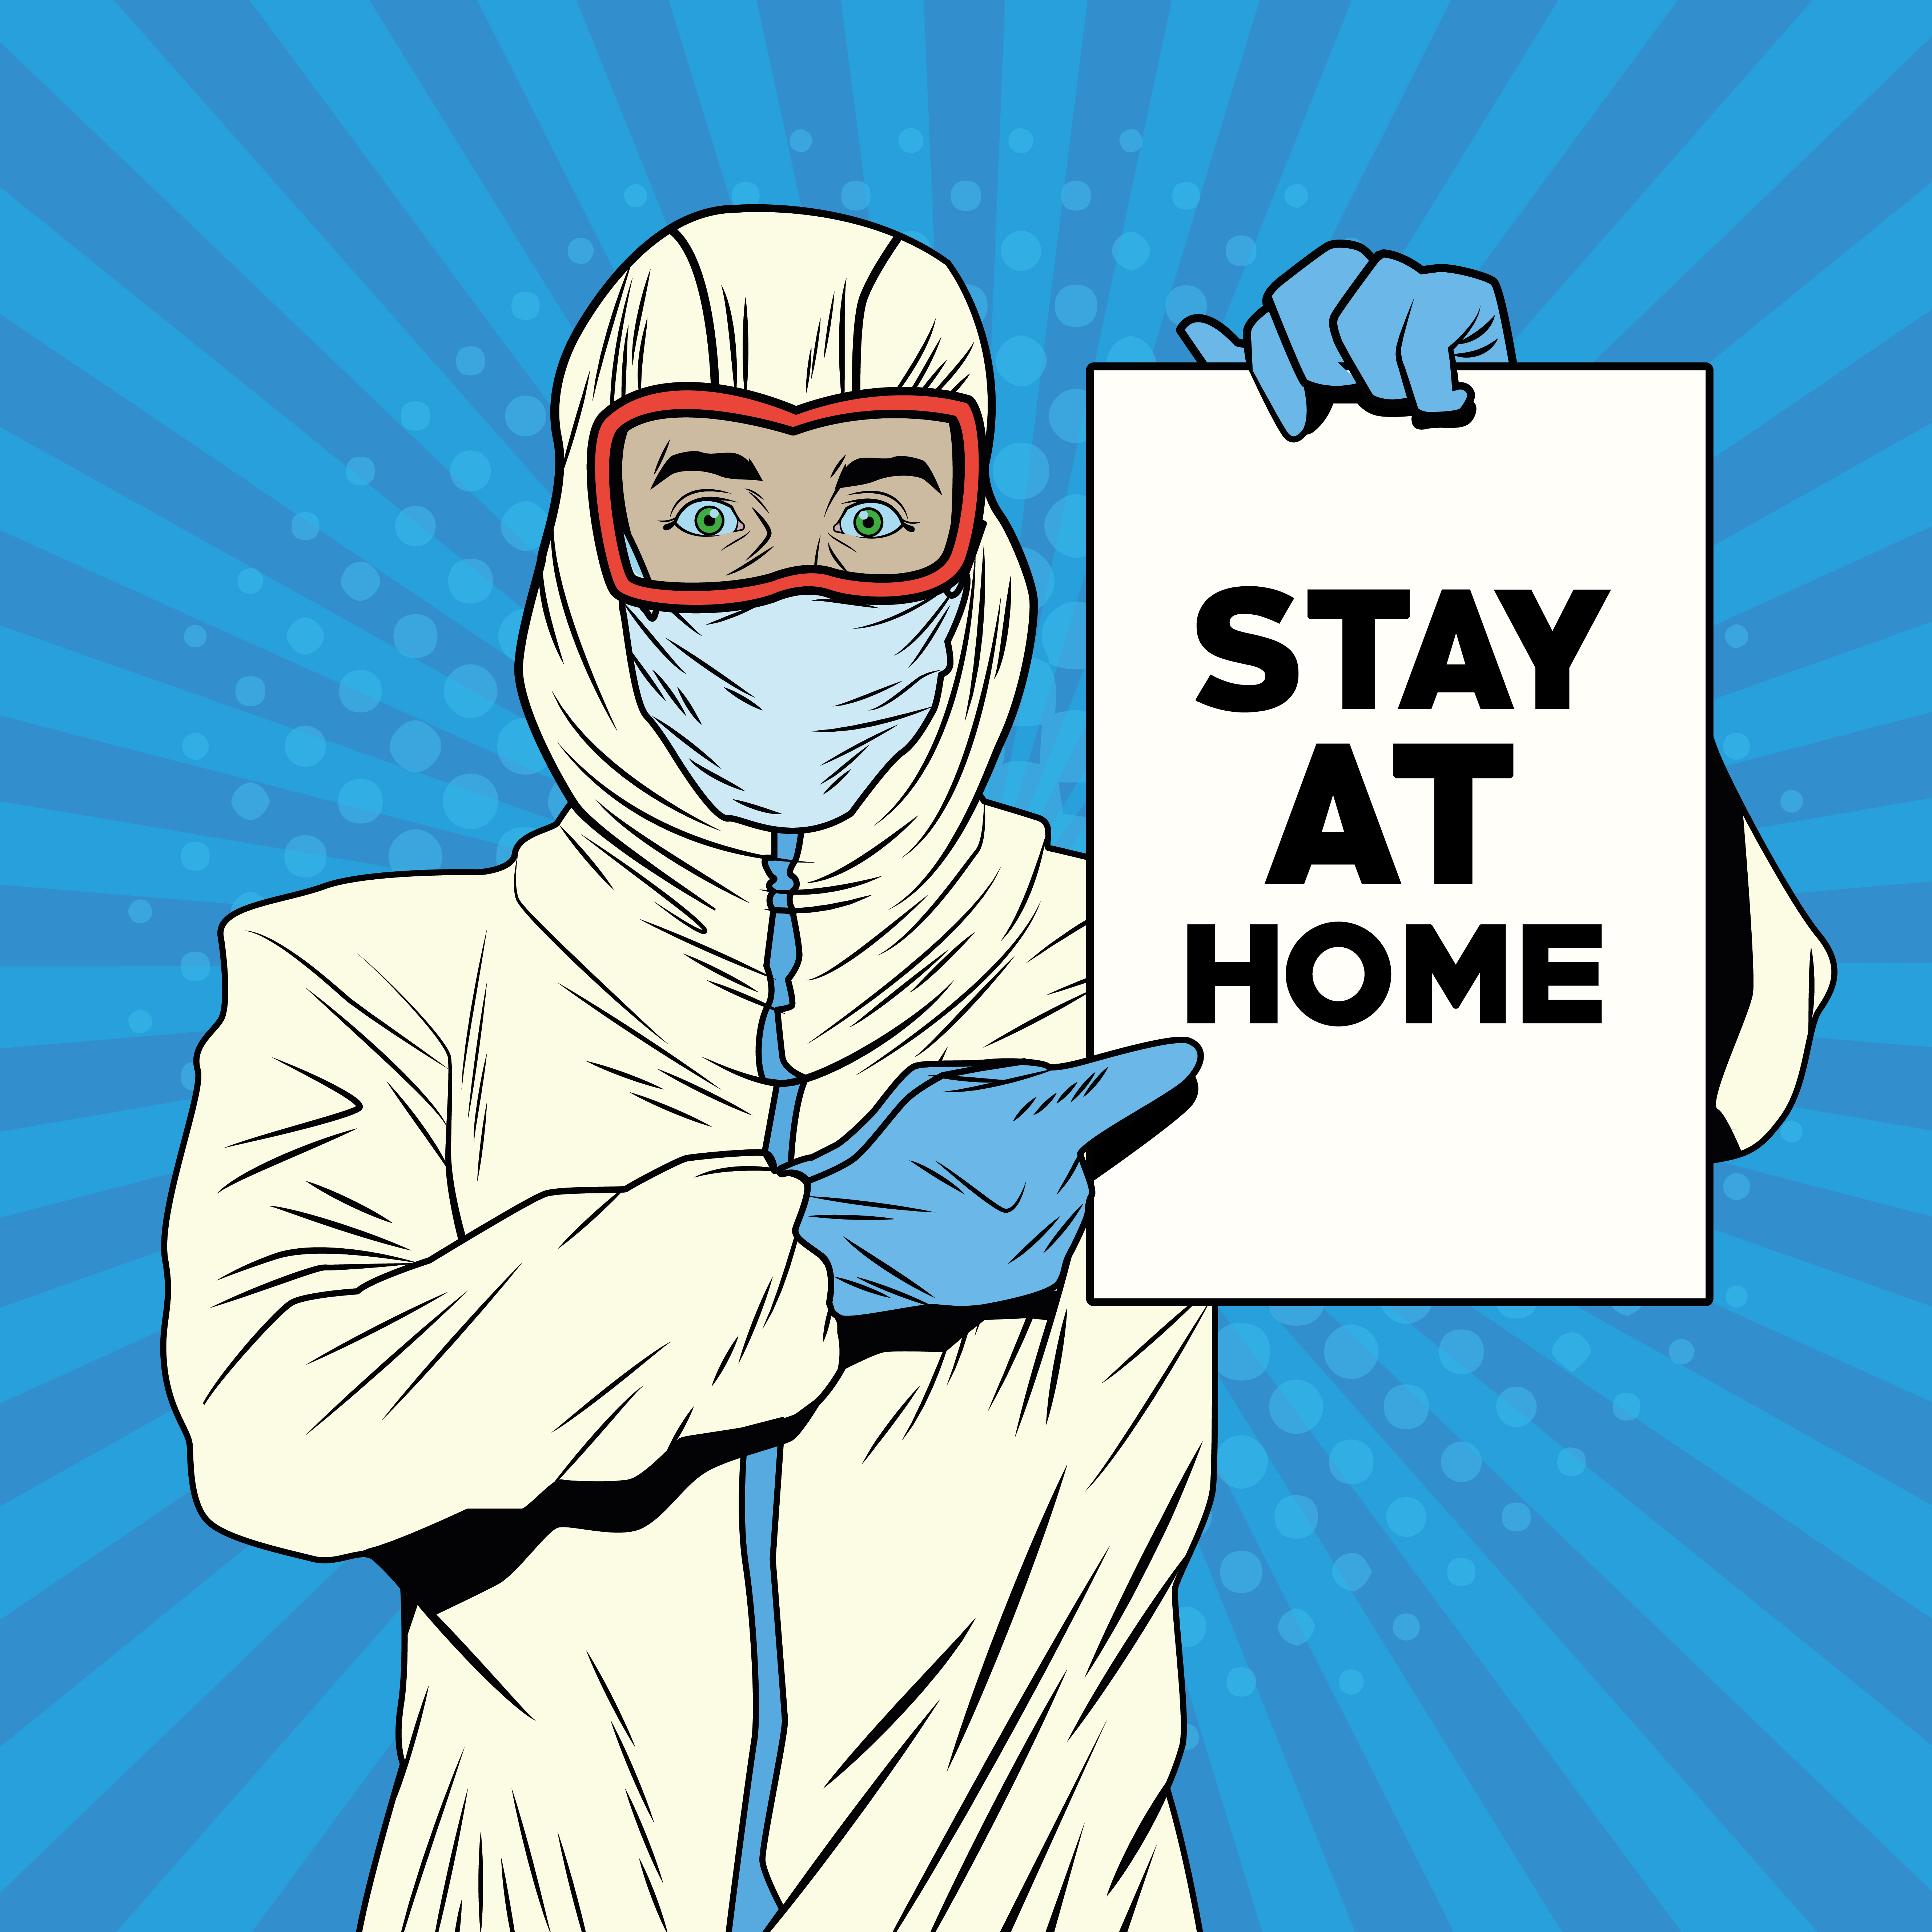 Man with biosafety suit and stay at home message